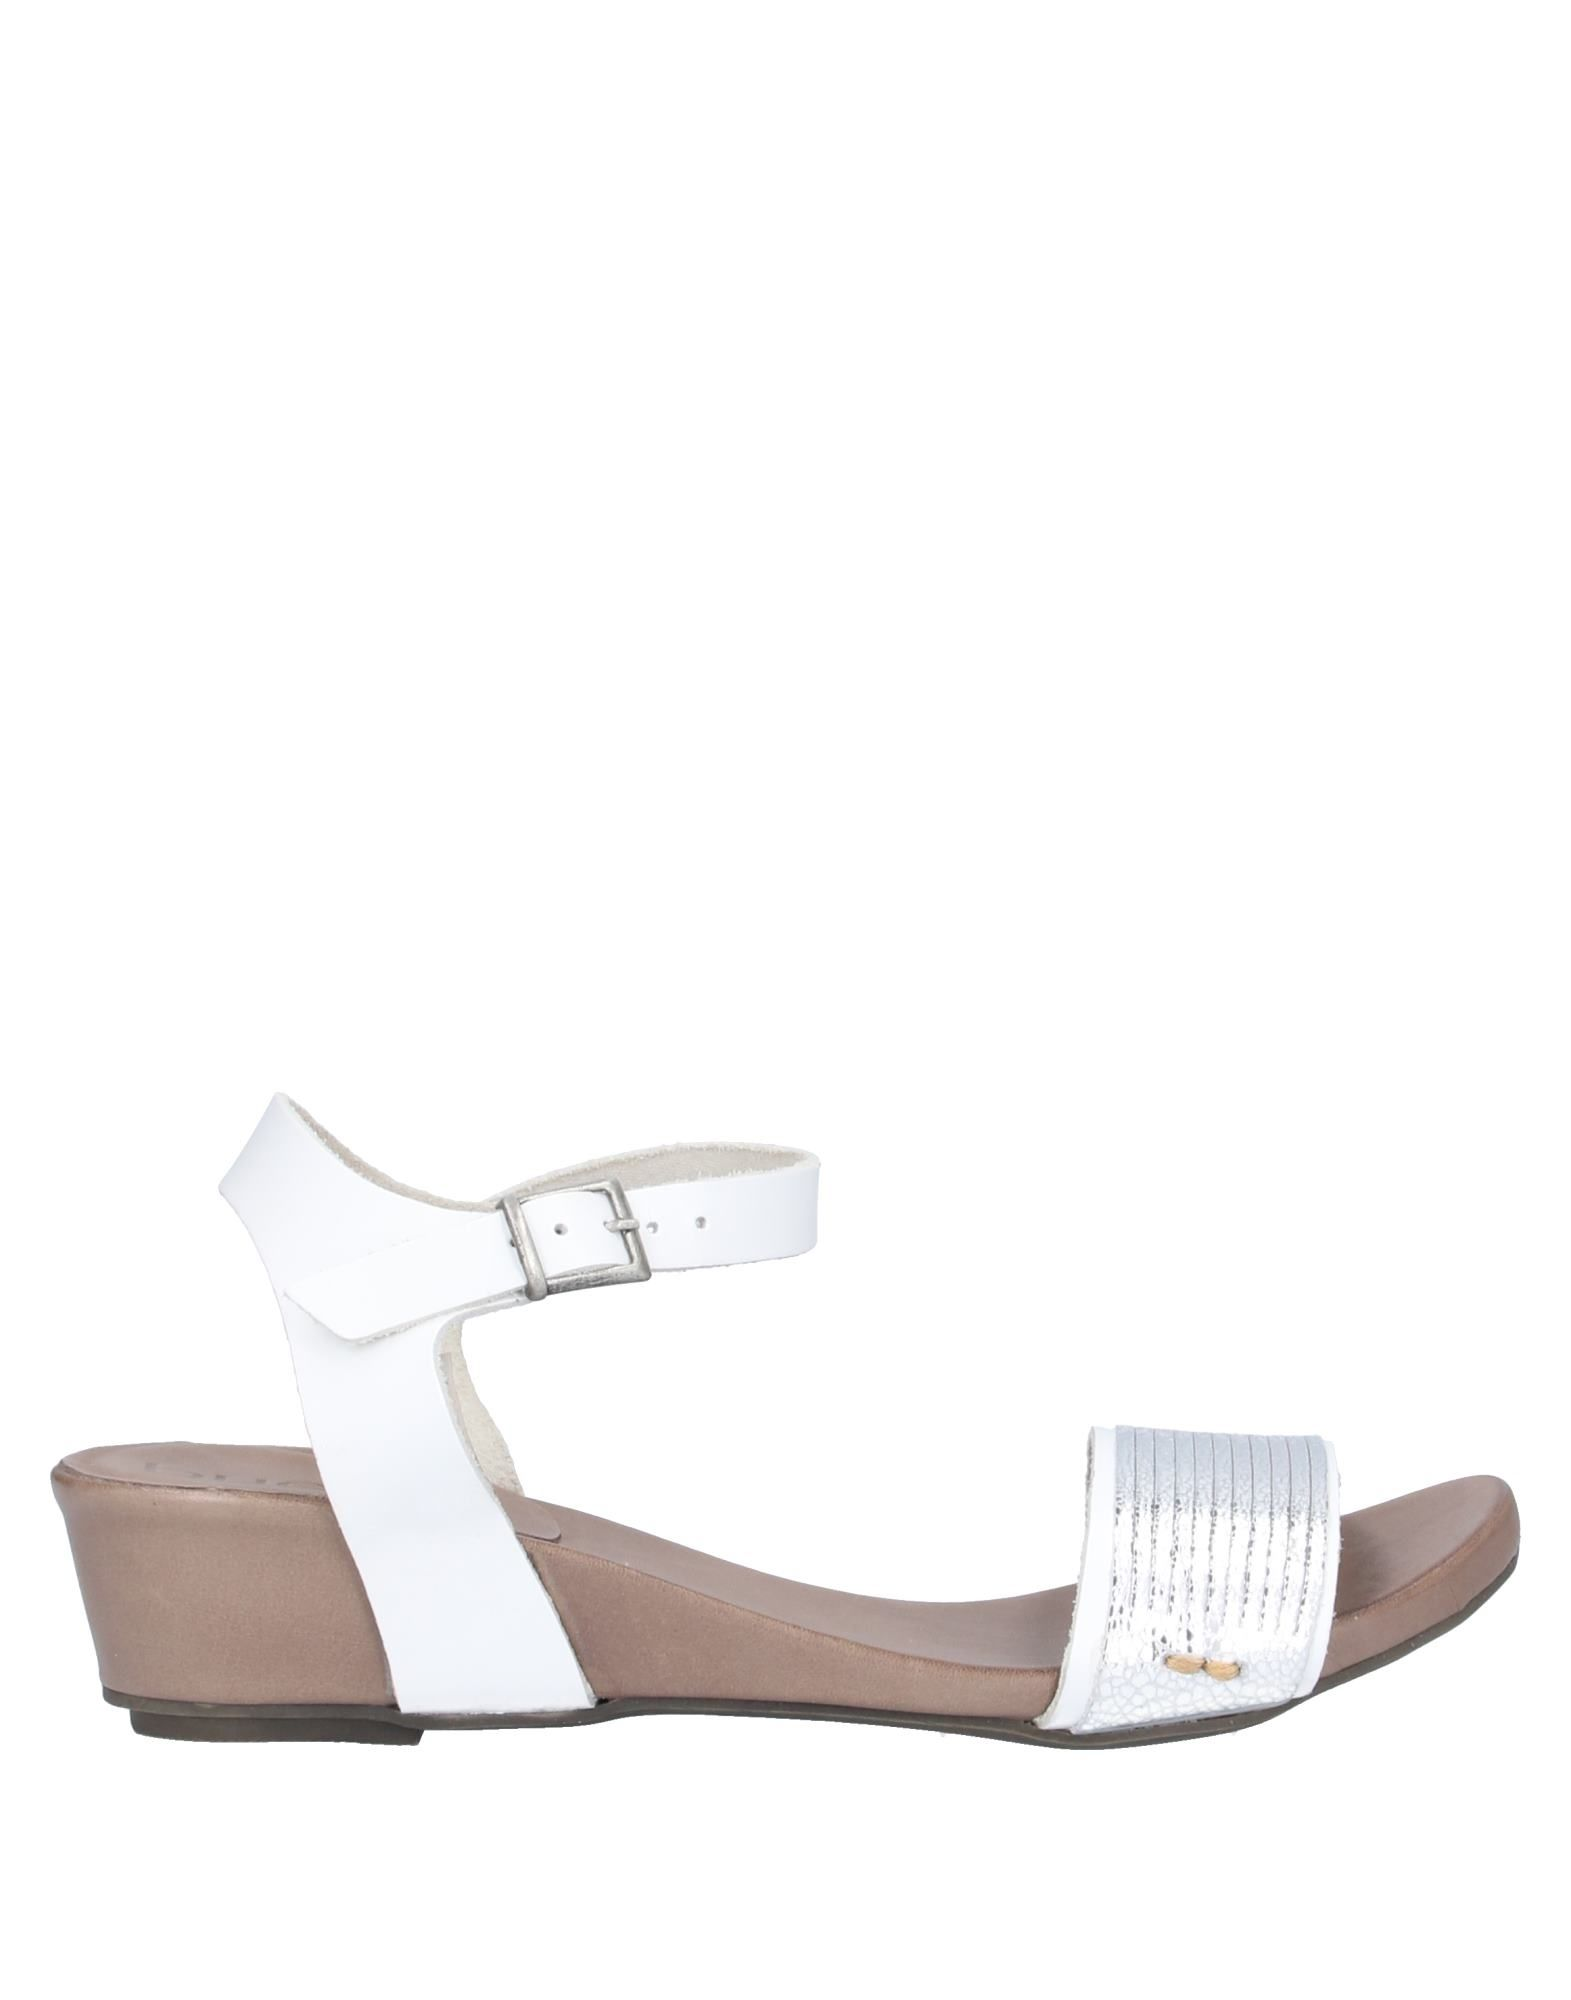 BUENO Sandals. leather, laminated effect, no appliqués, two-tone, buckle fastening, round toeline, wedge heel, leather lining, rubber sole, contains non-textile parts of animal origin. Soft Leather